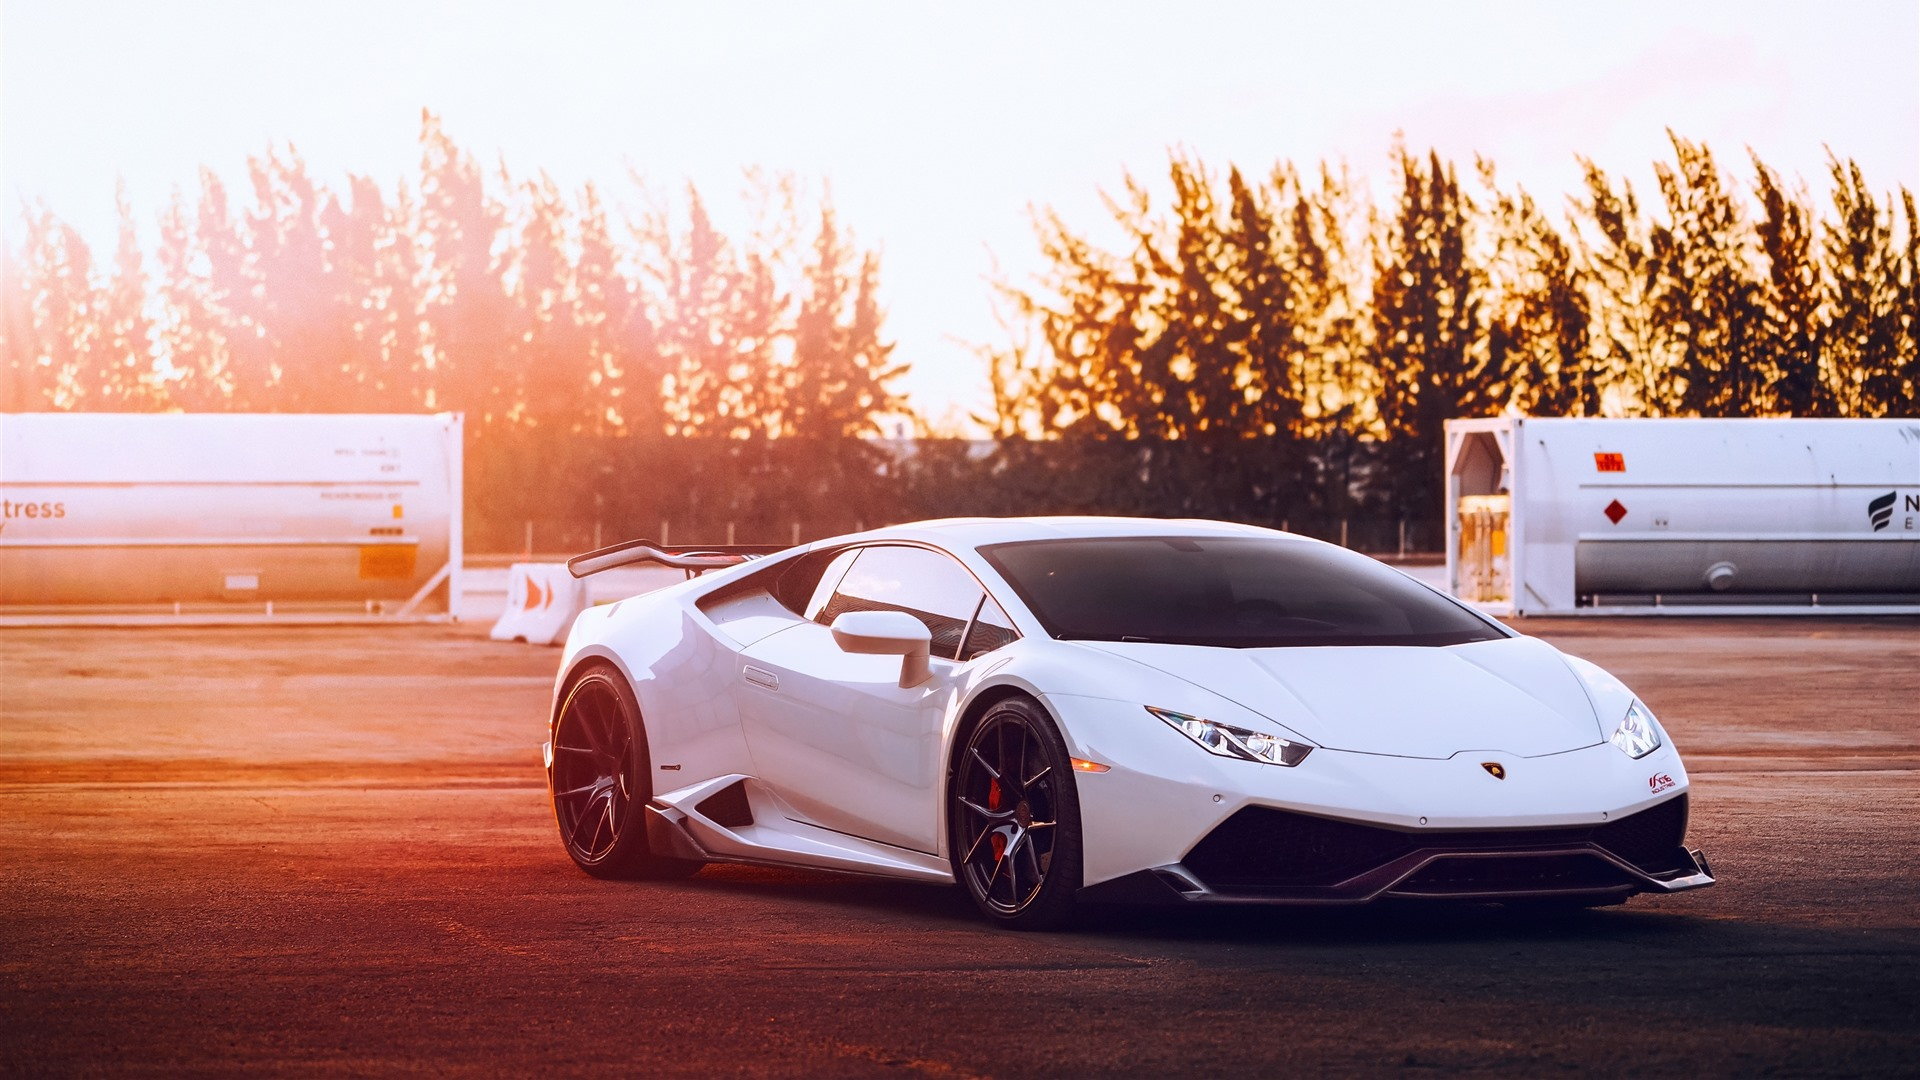 Wallpaper Lamborghini Huracan White Supercar Sunset